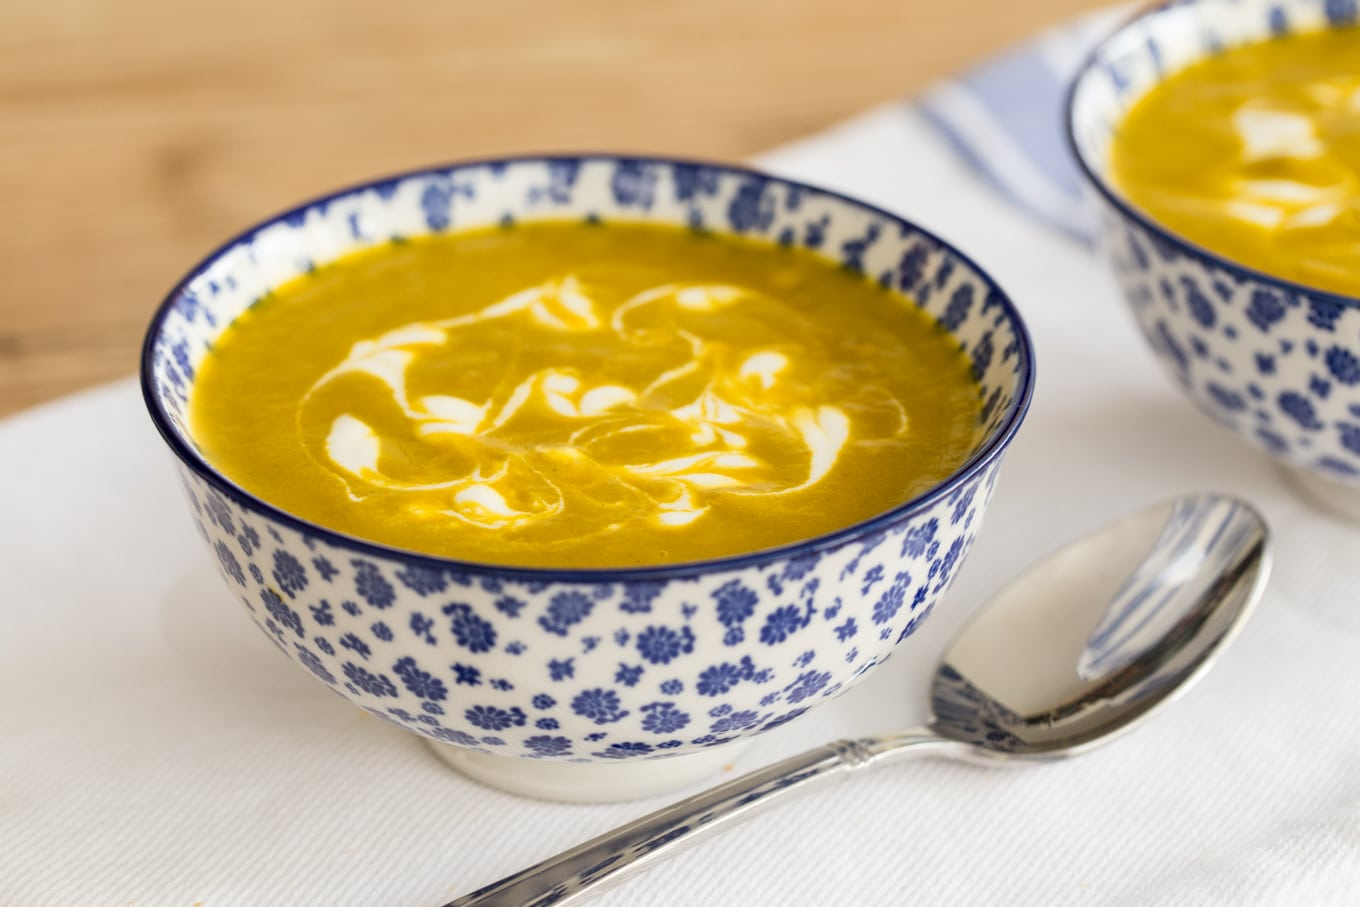 Carrot Coriander Soup - super healthy and crazy delicious, this beautifully-hued soup is sure to become a favorite with young and old alike!